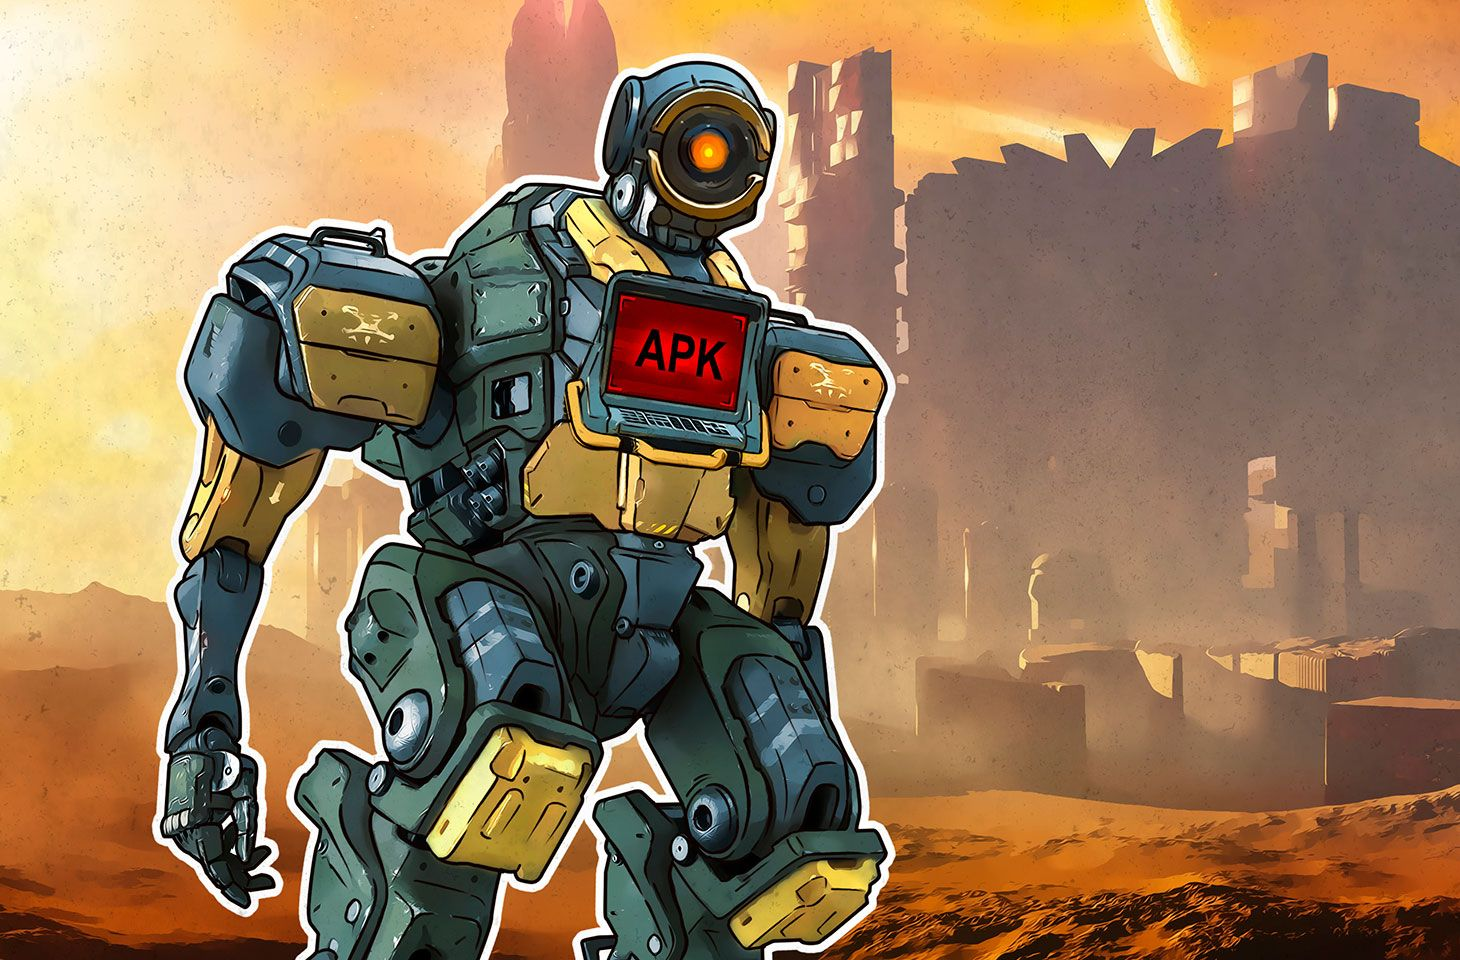 Malware disguised as Apex Legends for Android